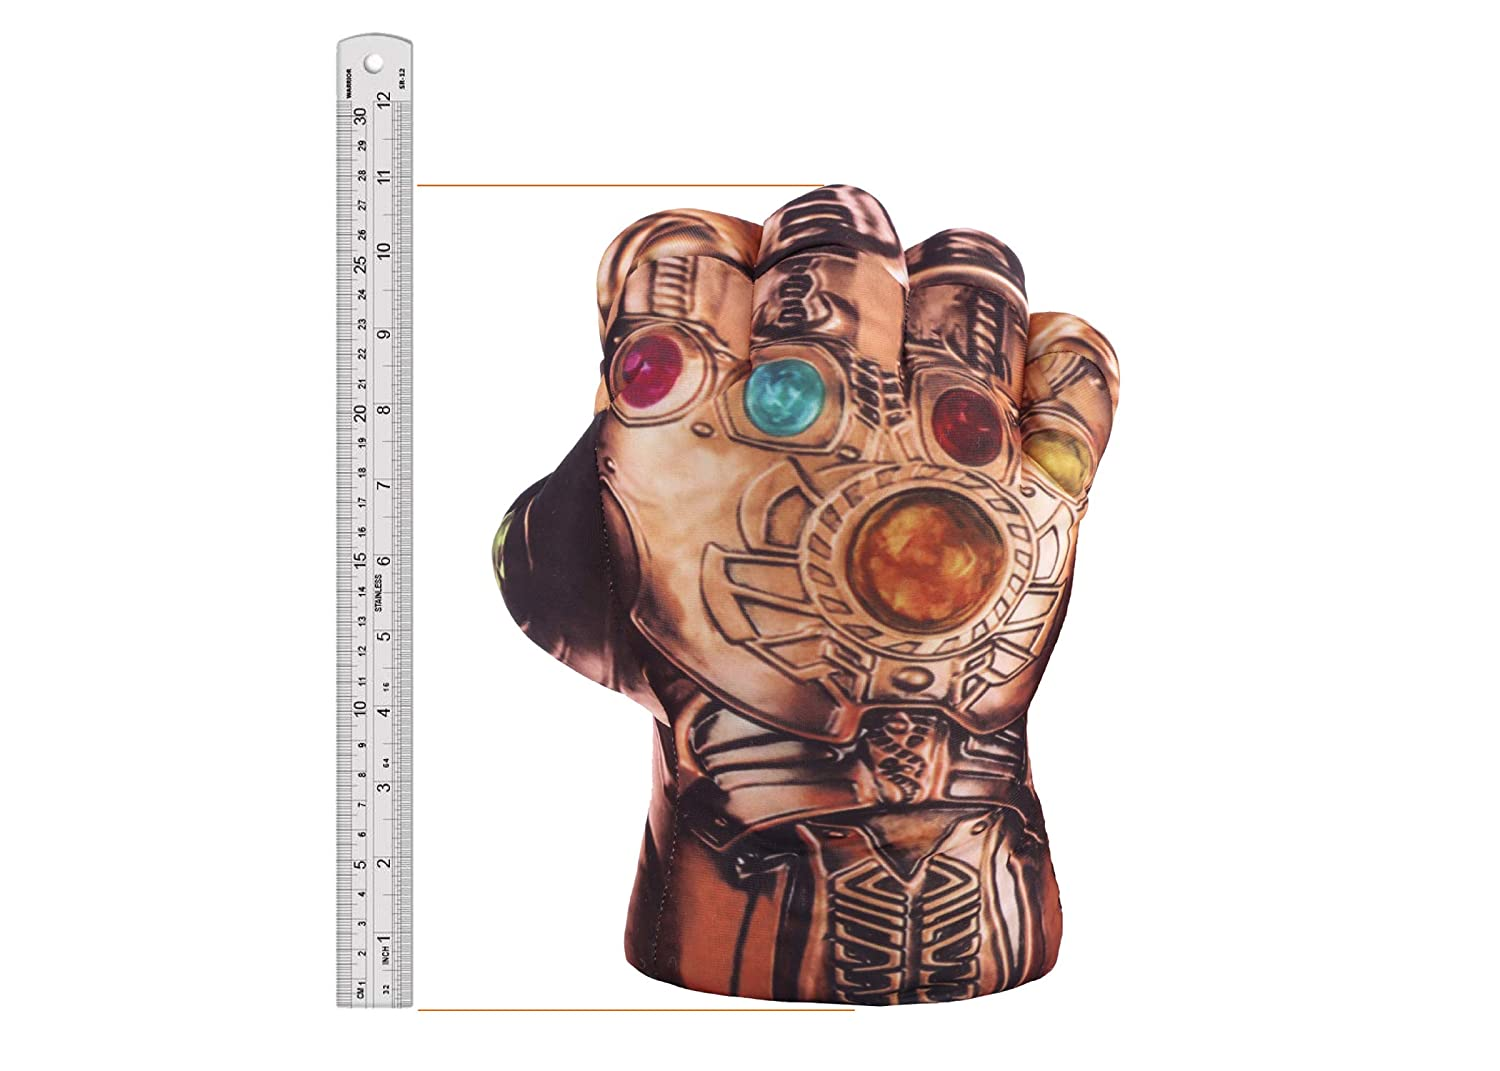 4feb2dc9 Amazon.com: Toyart Thanos Gloves Infinity Thanos Hands for Kids, Thanos  Fists for Kids Costume, Mask, 1 Pair: Toys & Games